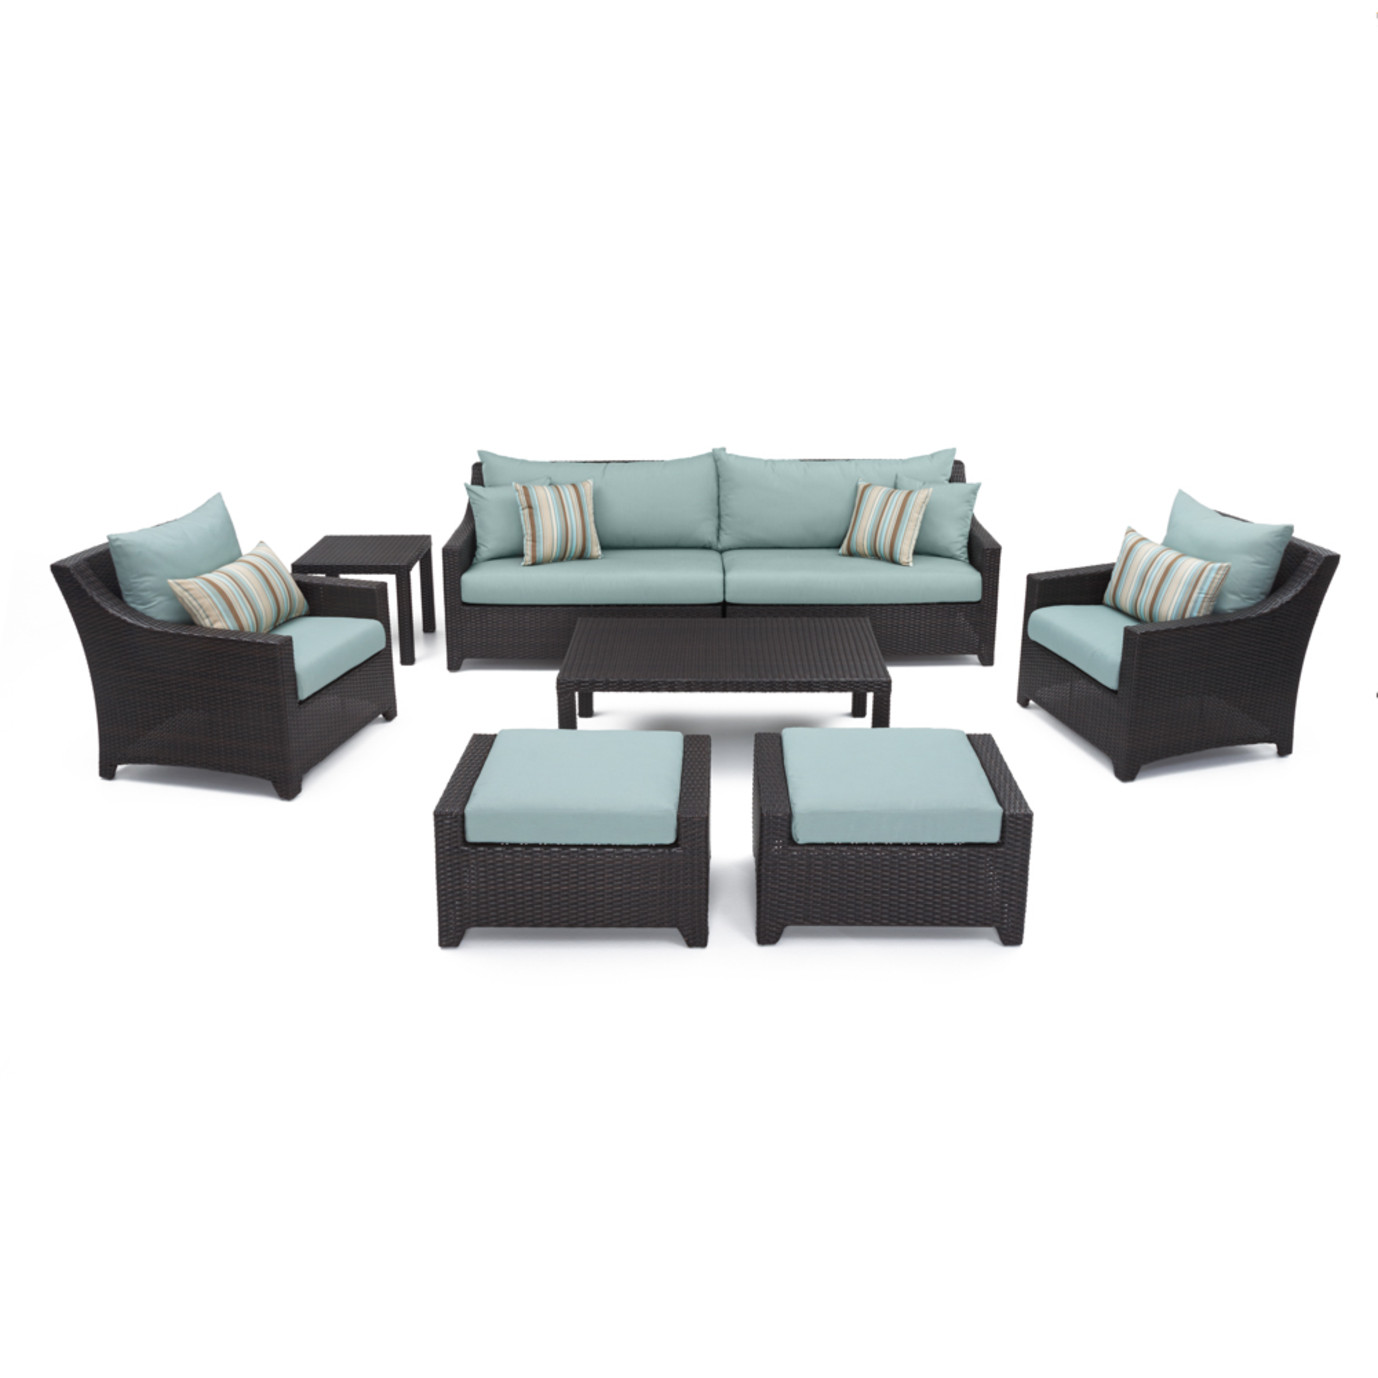 Deco™ 8 Piece Sofa and Club Chair Set - Bliss Blue